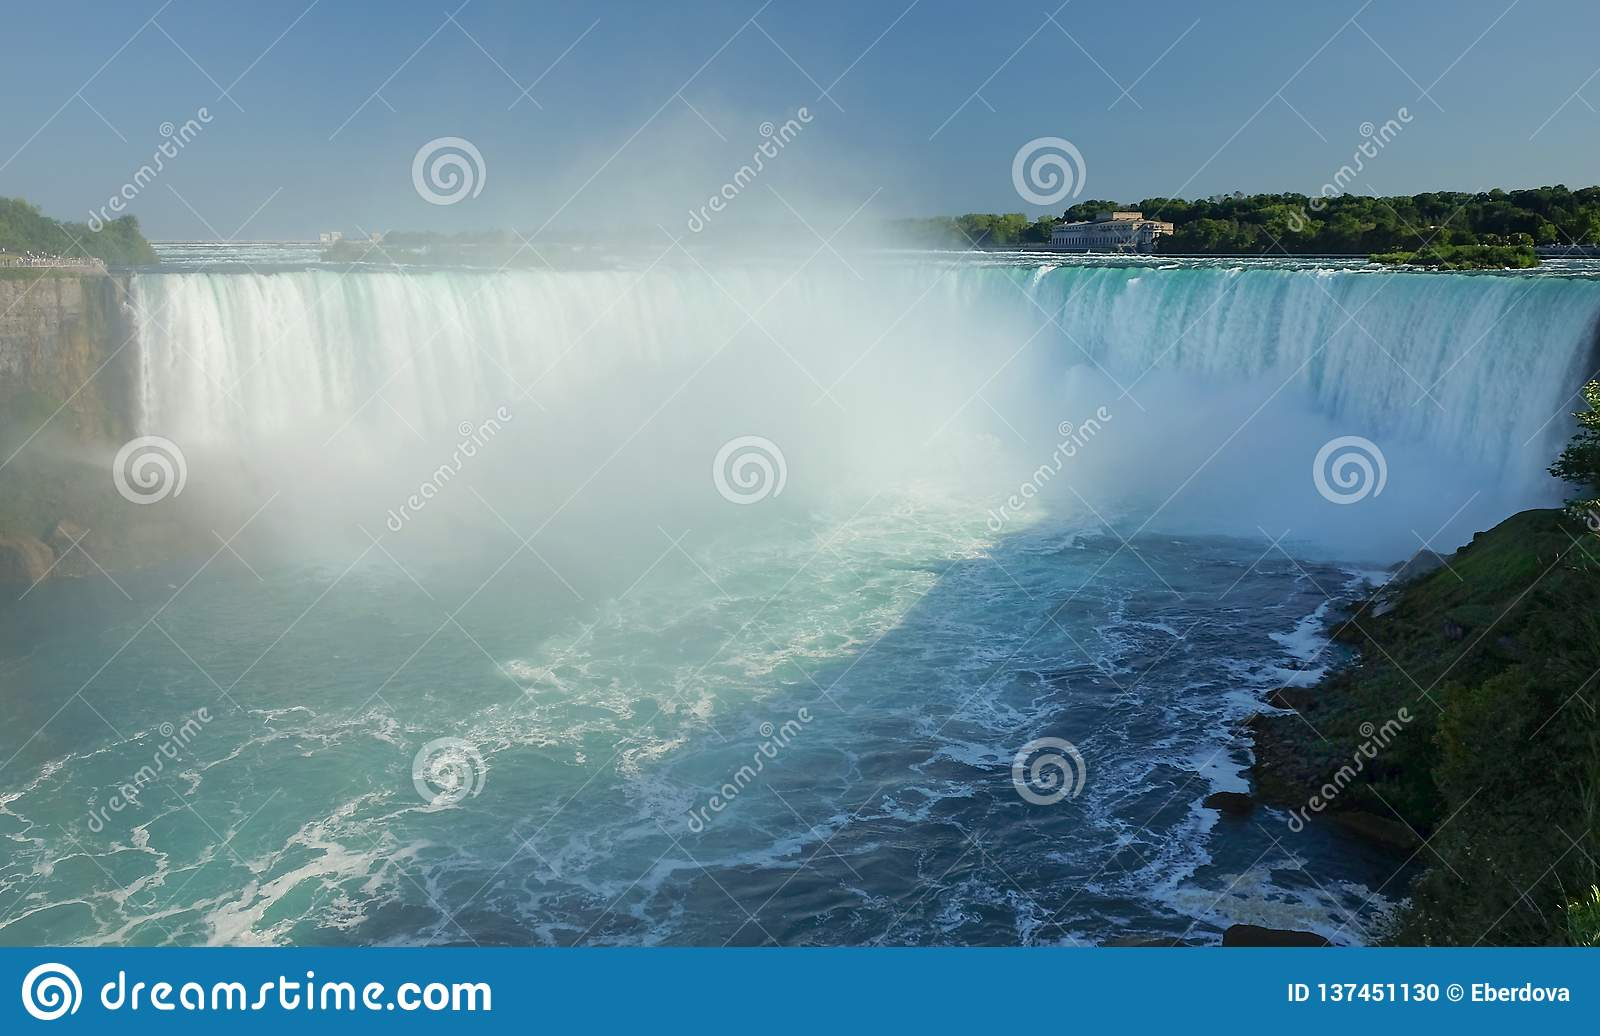 Full view of Niagara Falls from Canadian side.